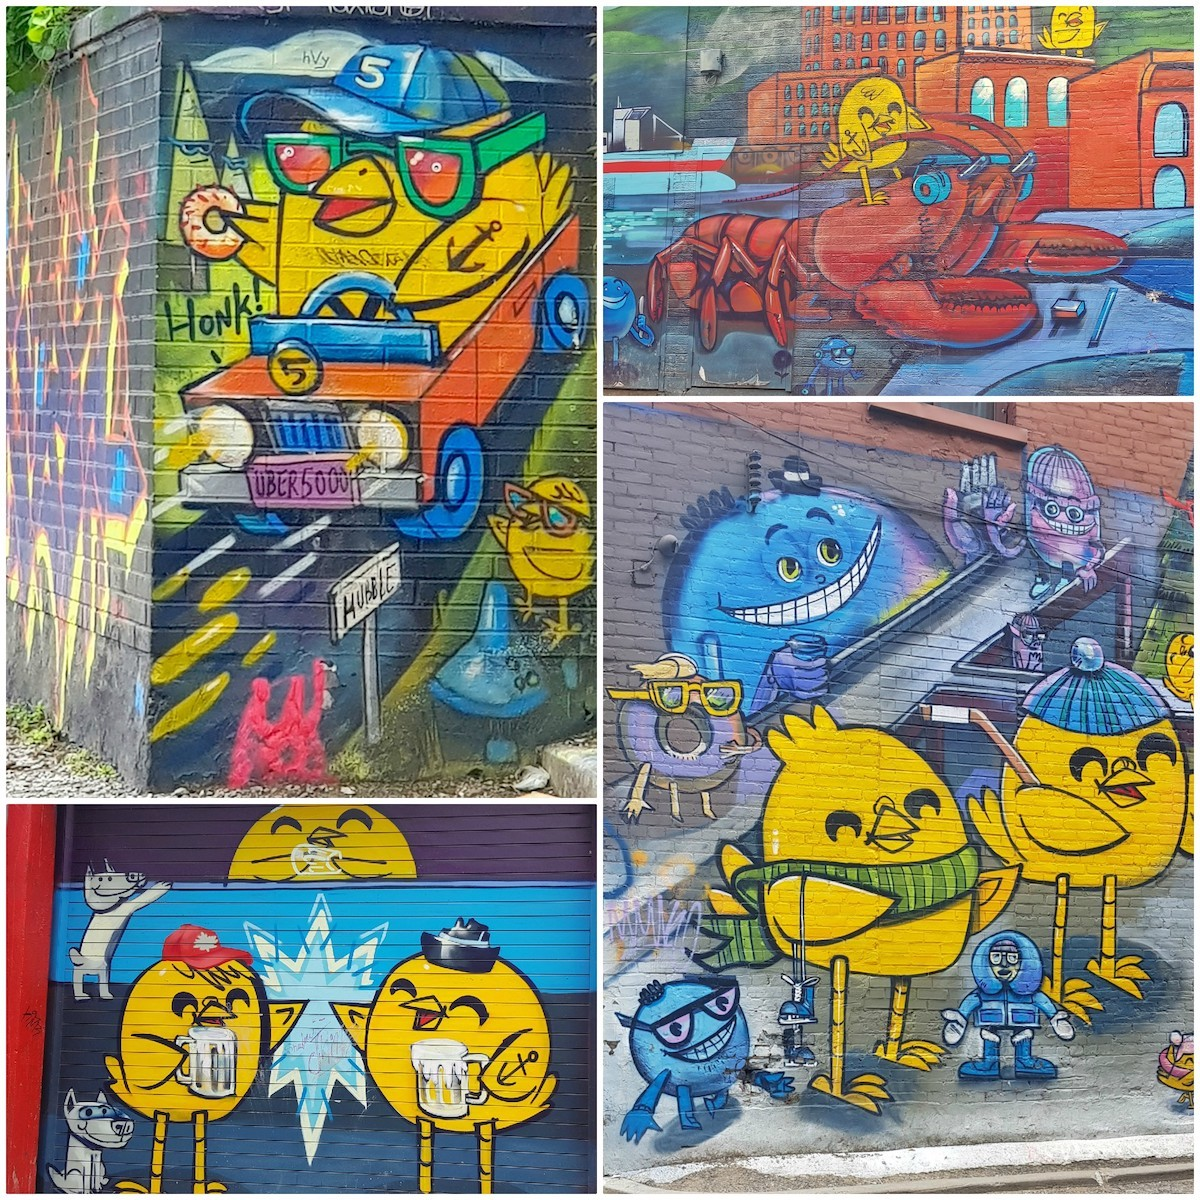 Graffity Alley - Les poussins d'Uber 5000